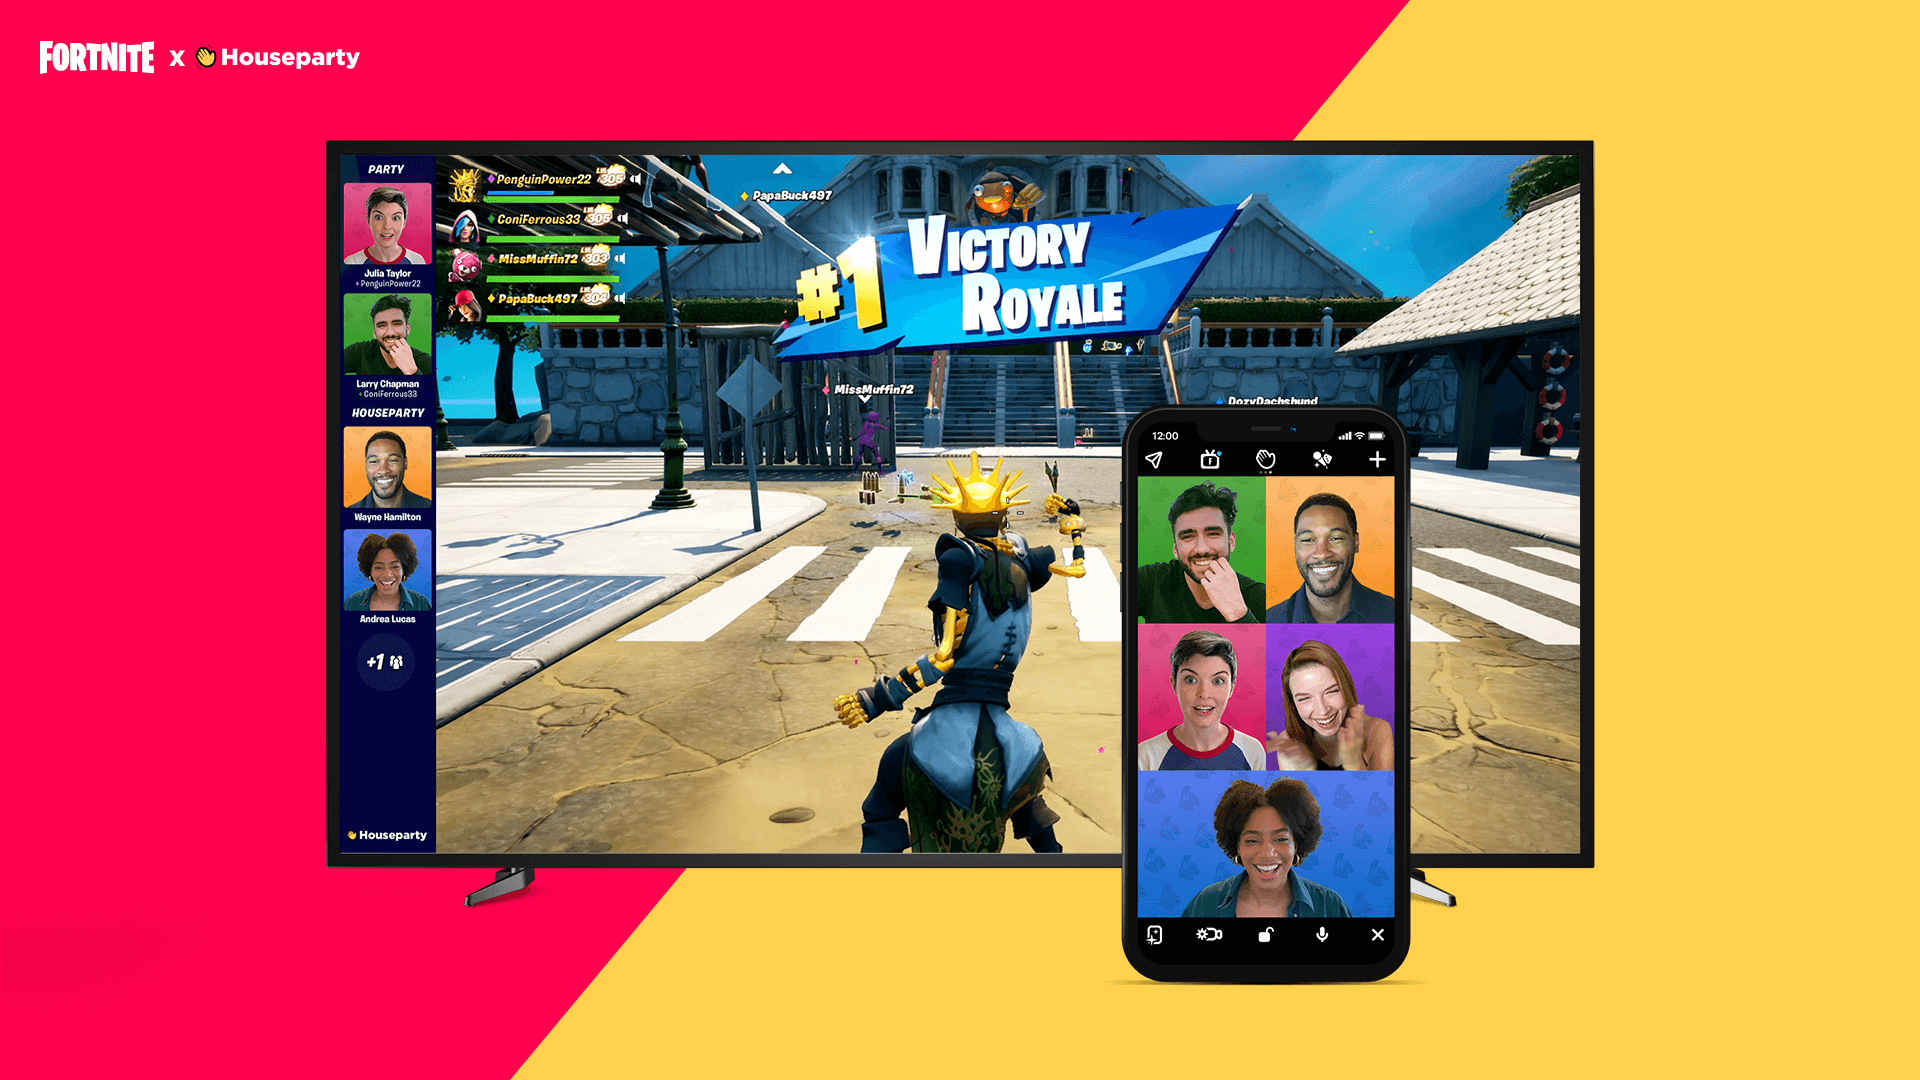 Fortnite : L'application de visioconférence Houseparty intégrée